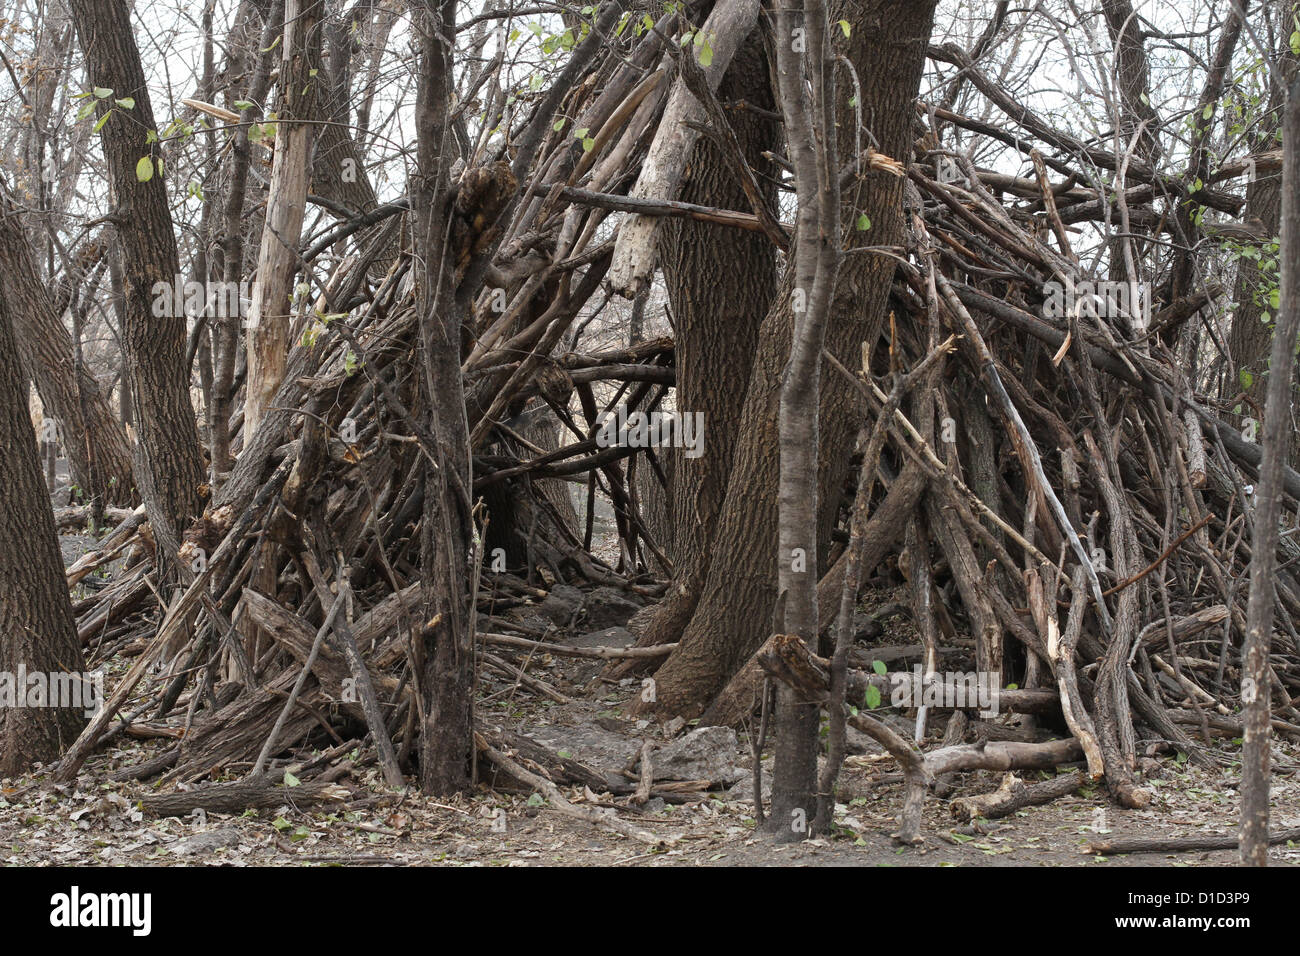 A fort in the woods made of sticks and branches. - Stock Image